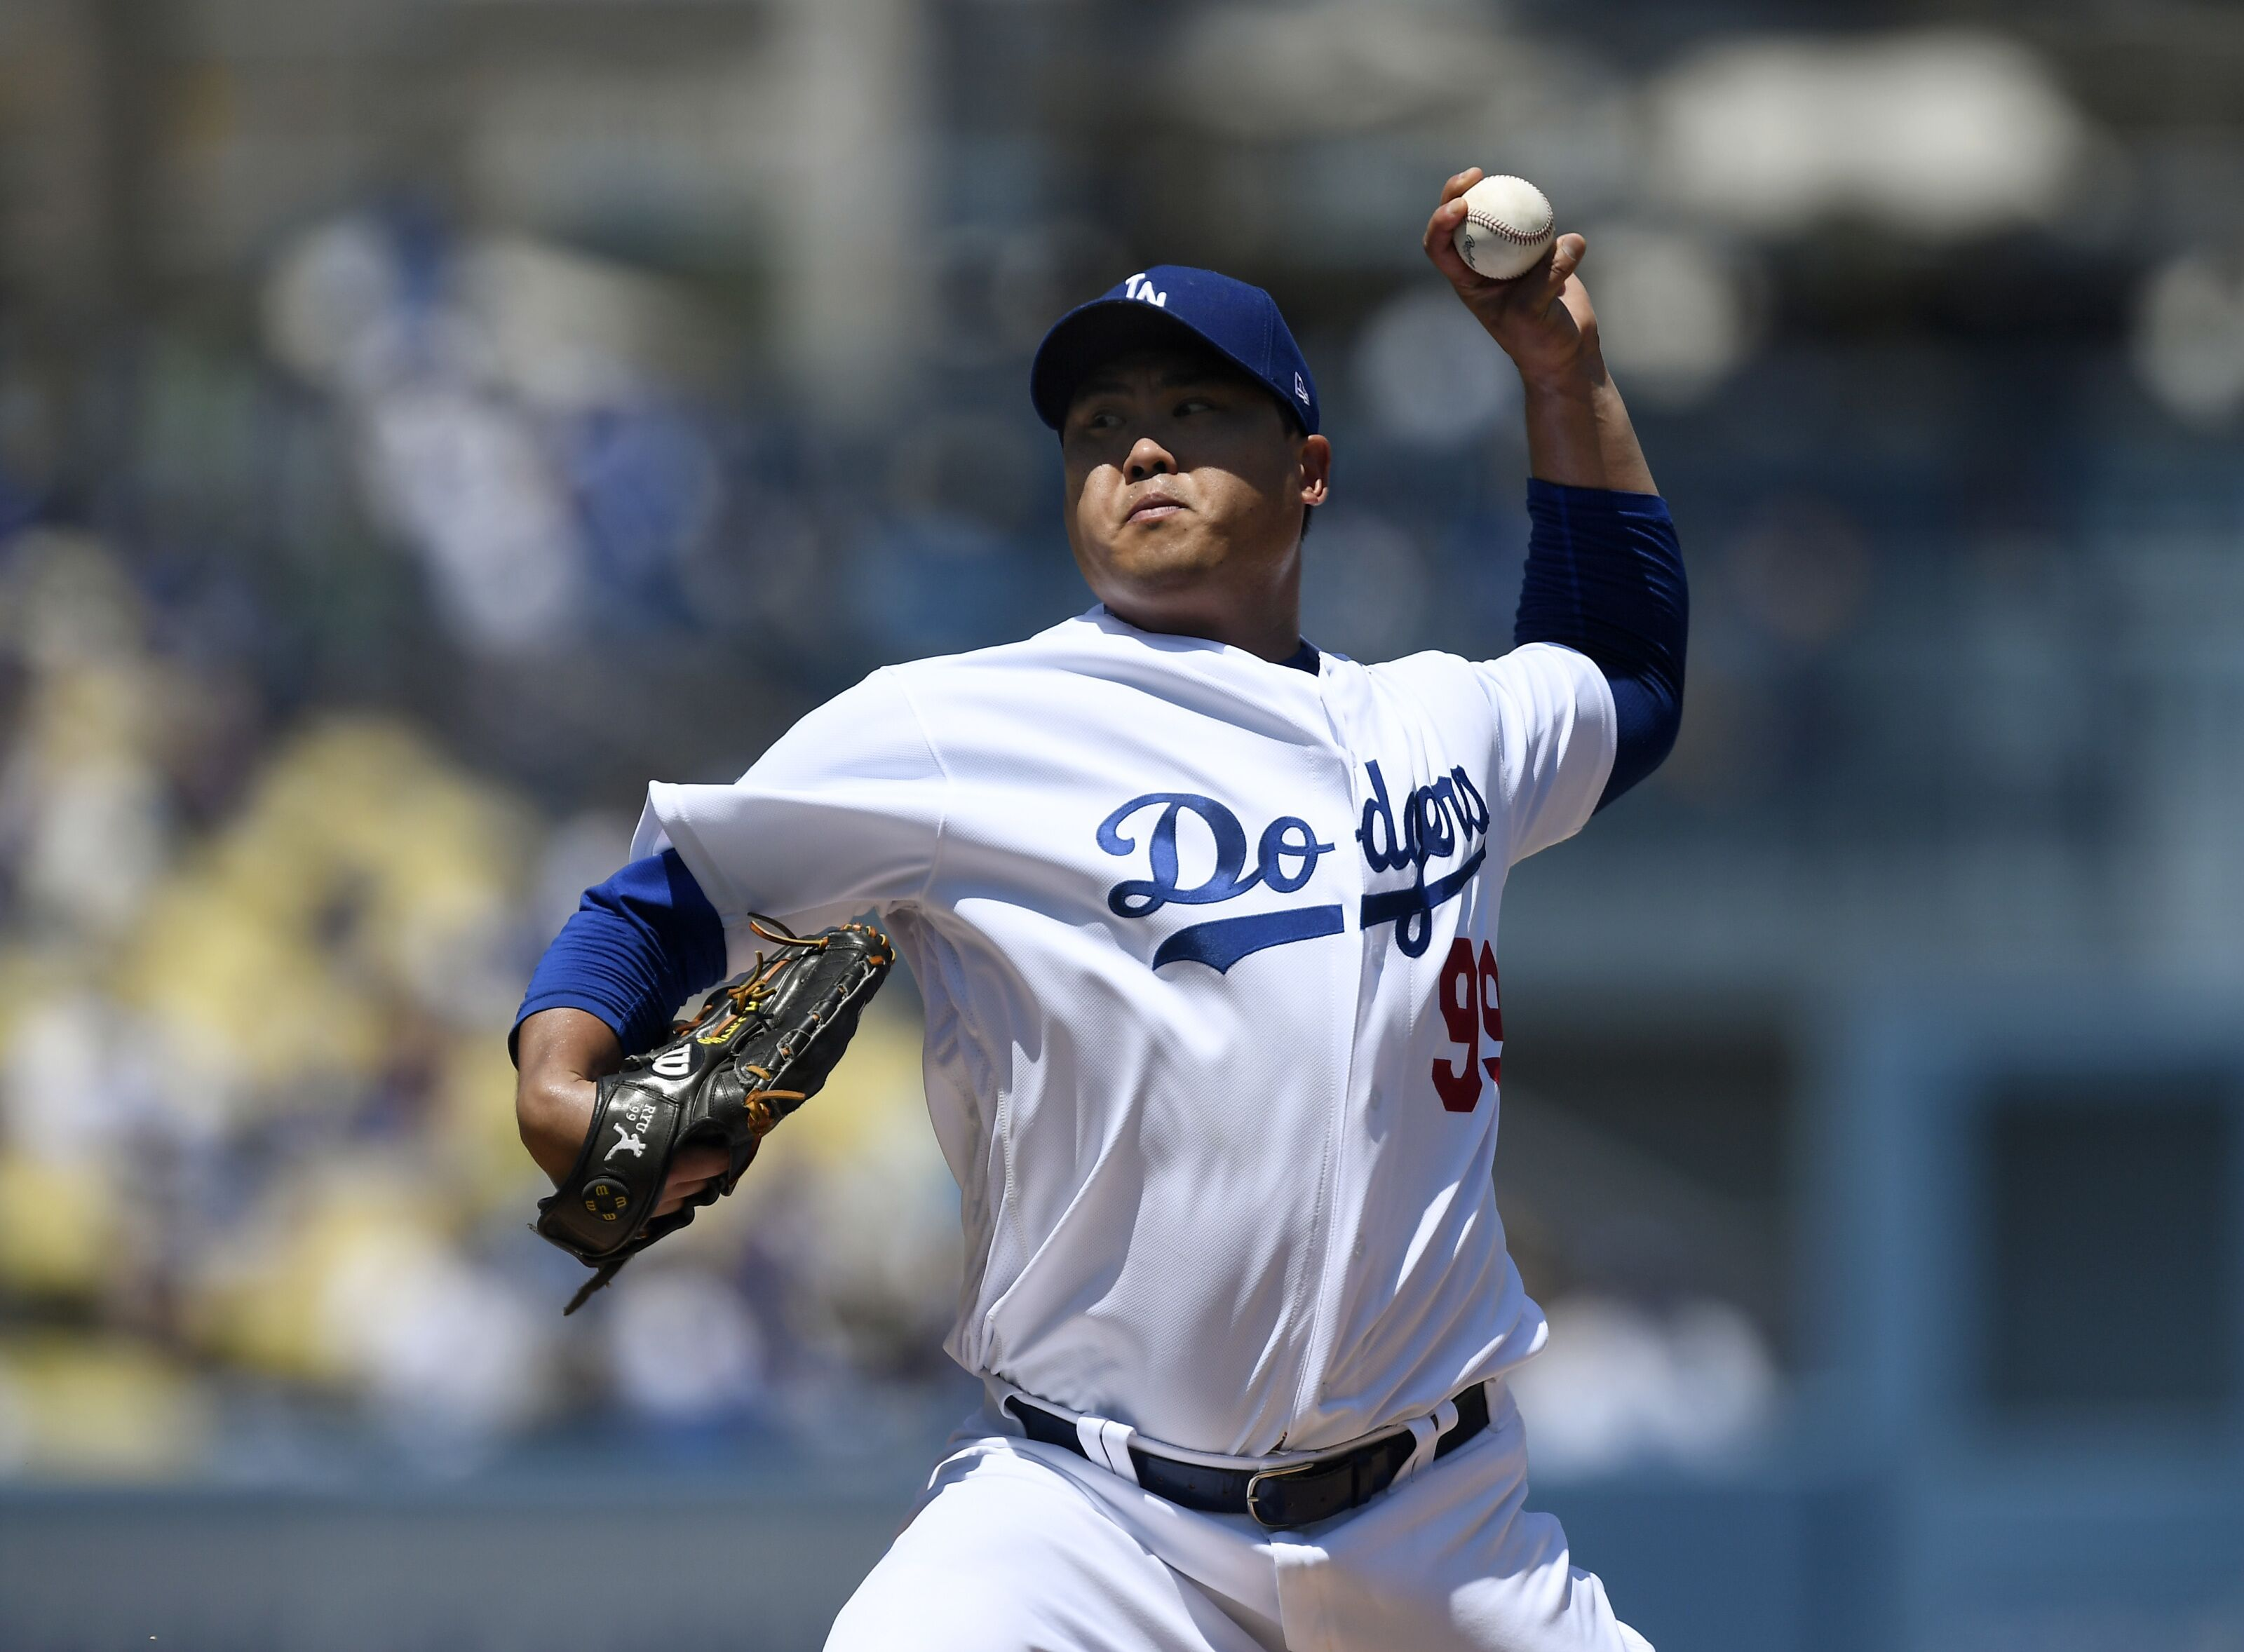 Los Angeles Dodgers: Bats look to stay hot to take series in Atlanta